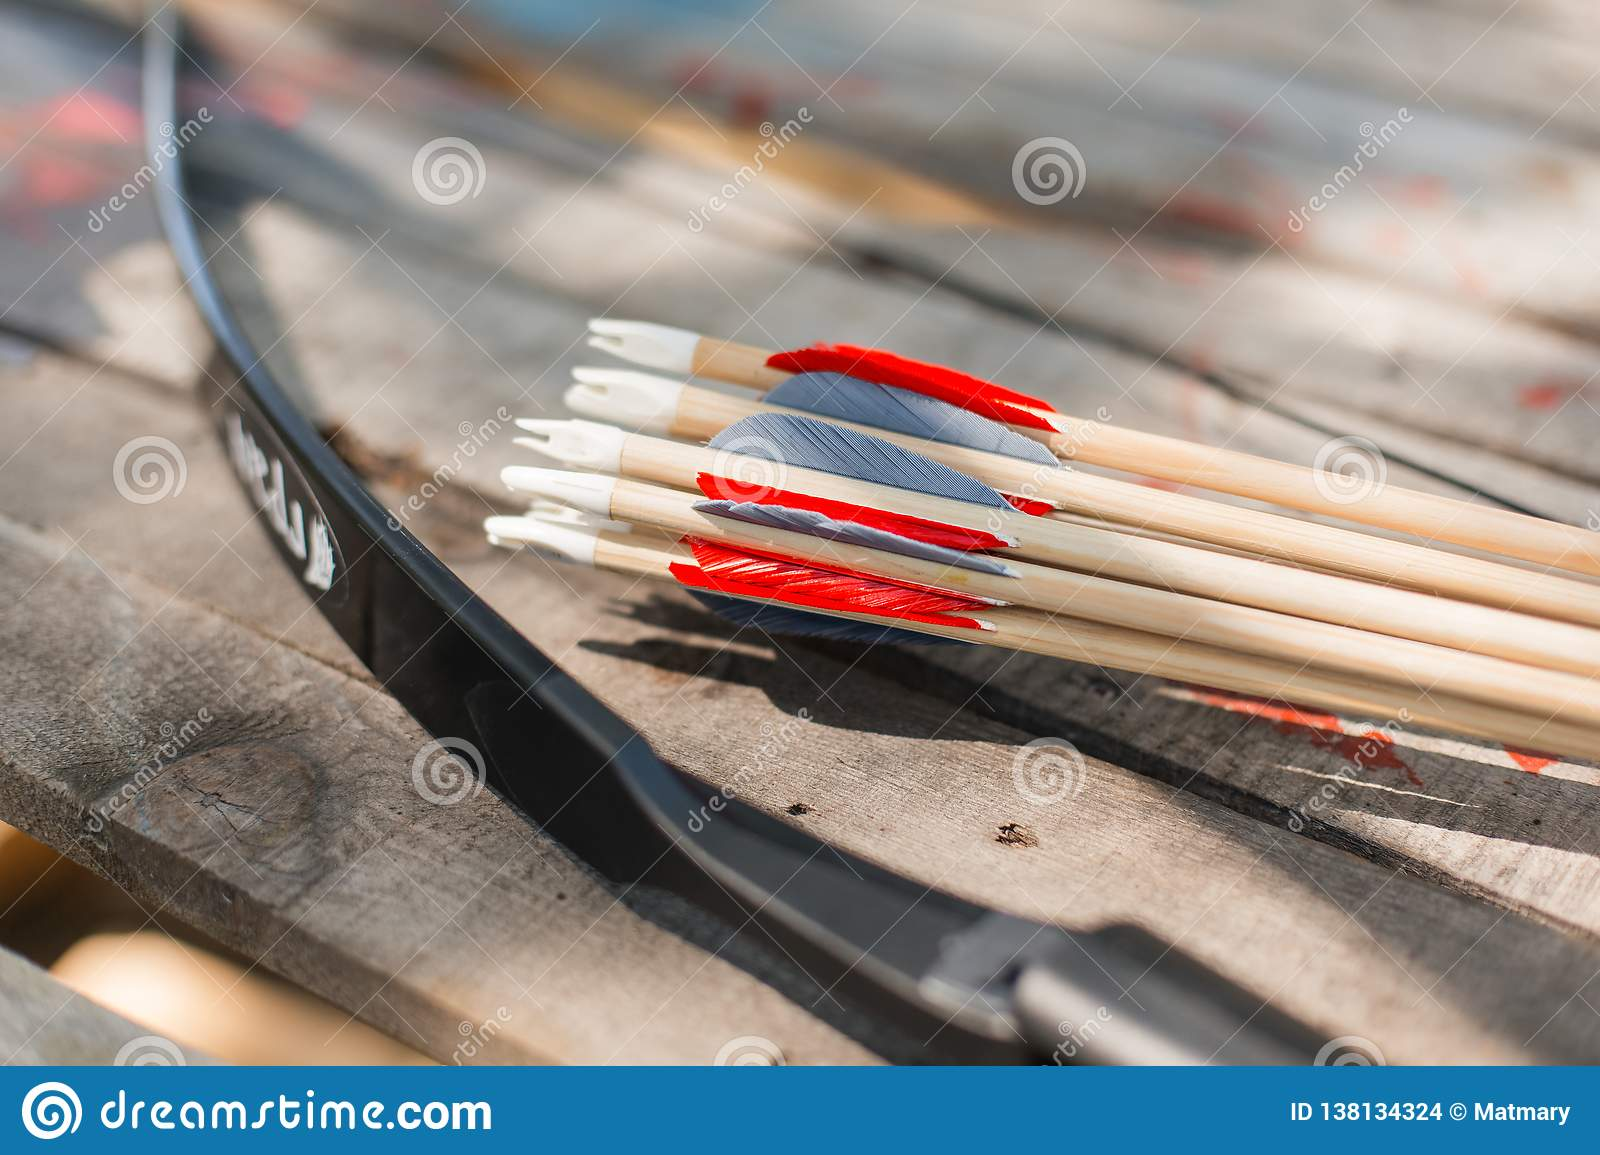 Traditional wooden arrows with feather fletching and a wooden bow in the background. Wooden archery homemade arrows with plastic nocks and natural feathers.